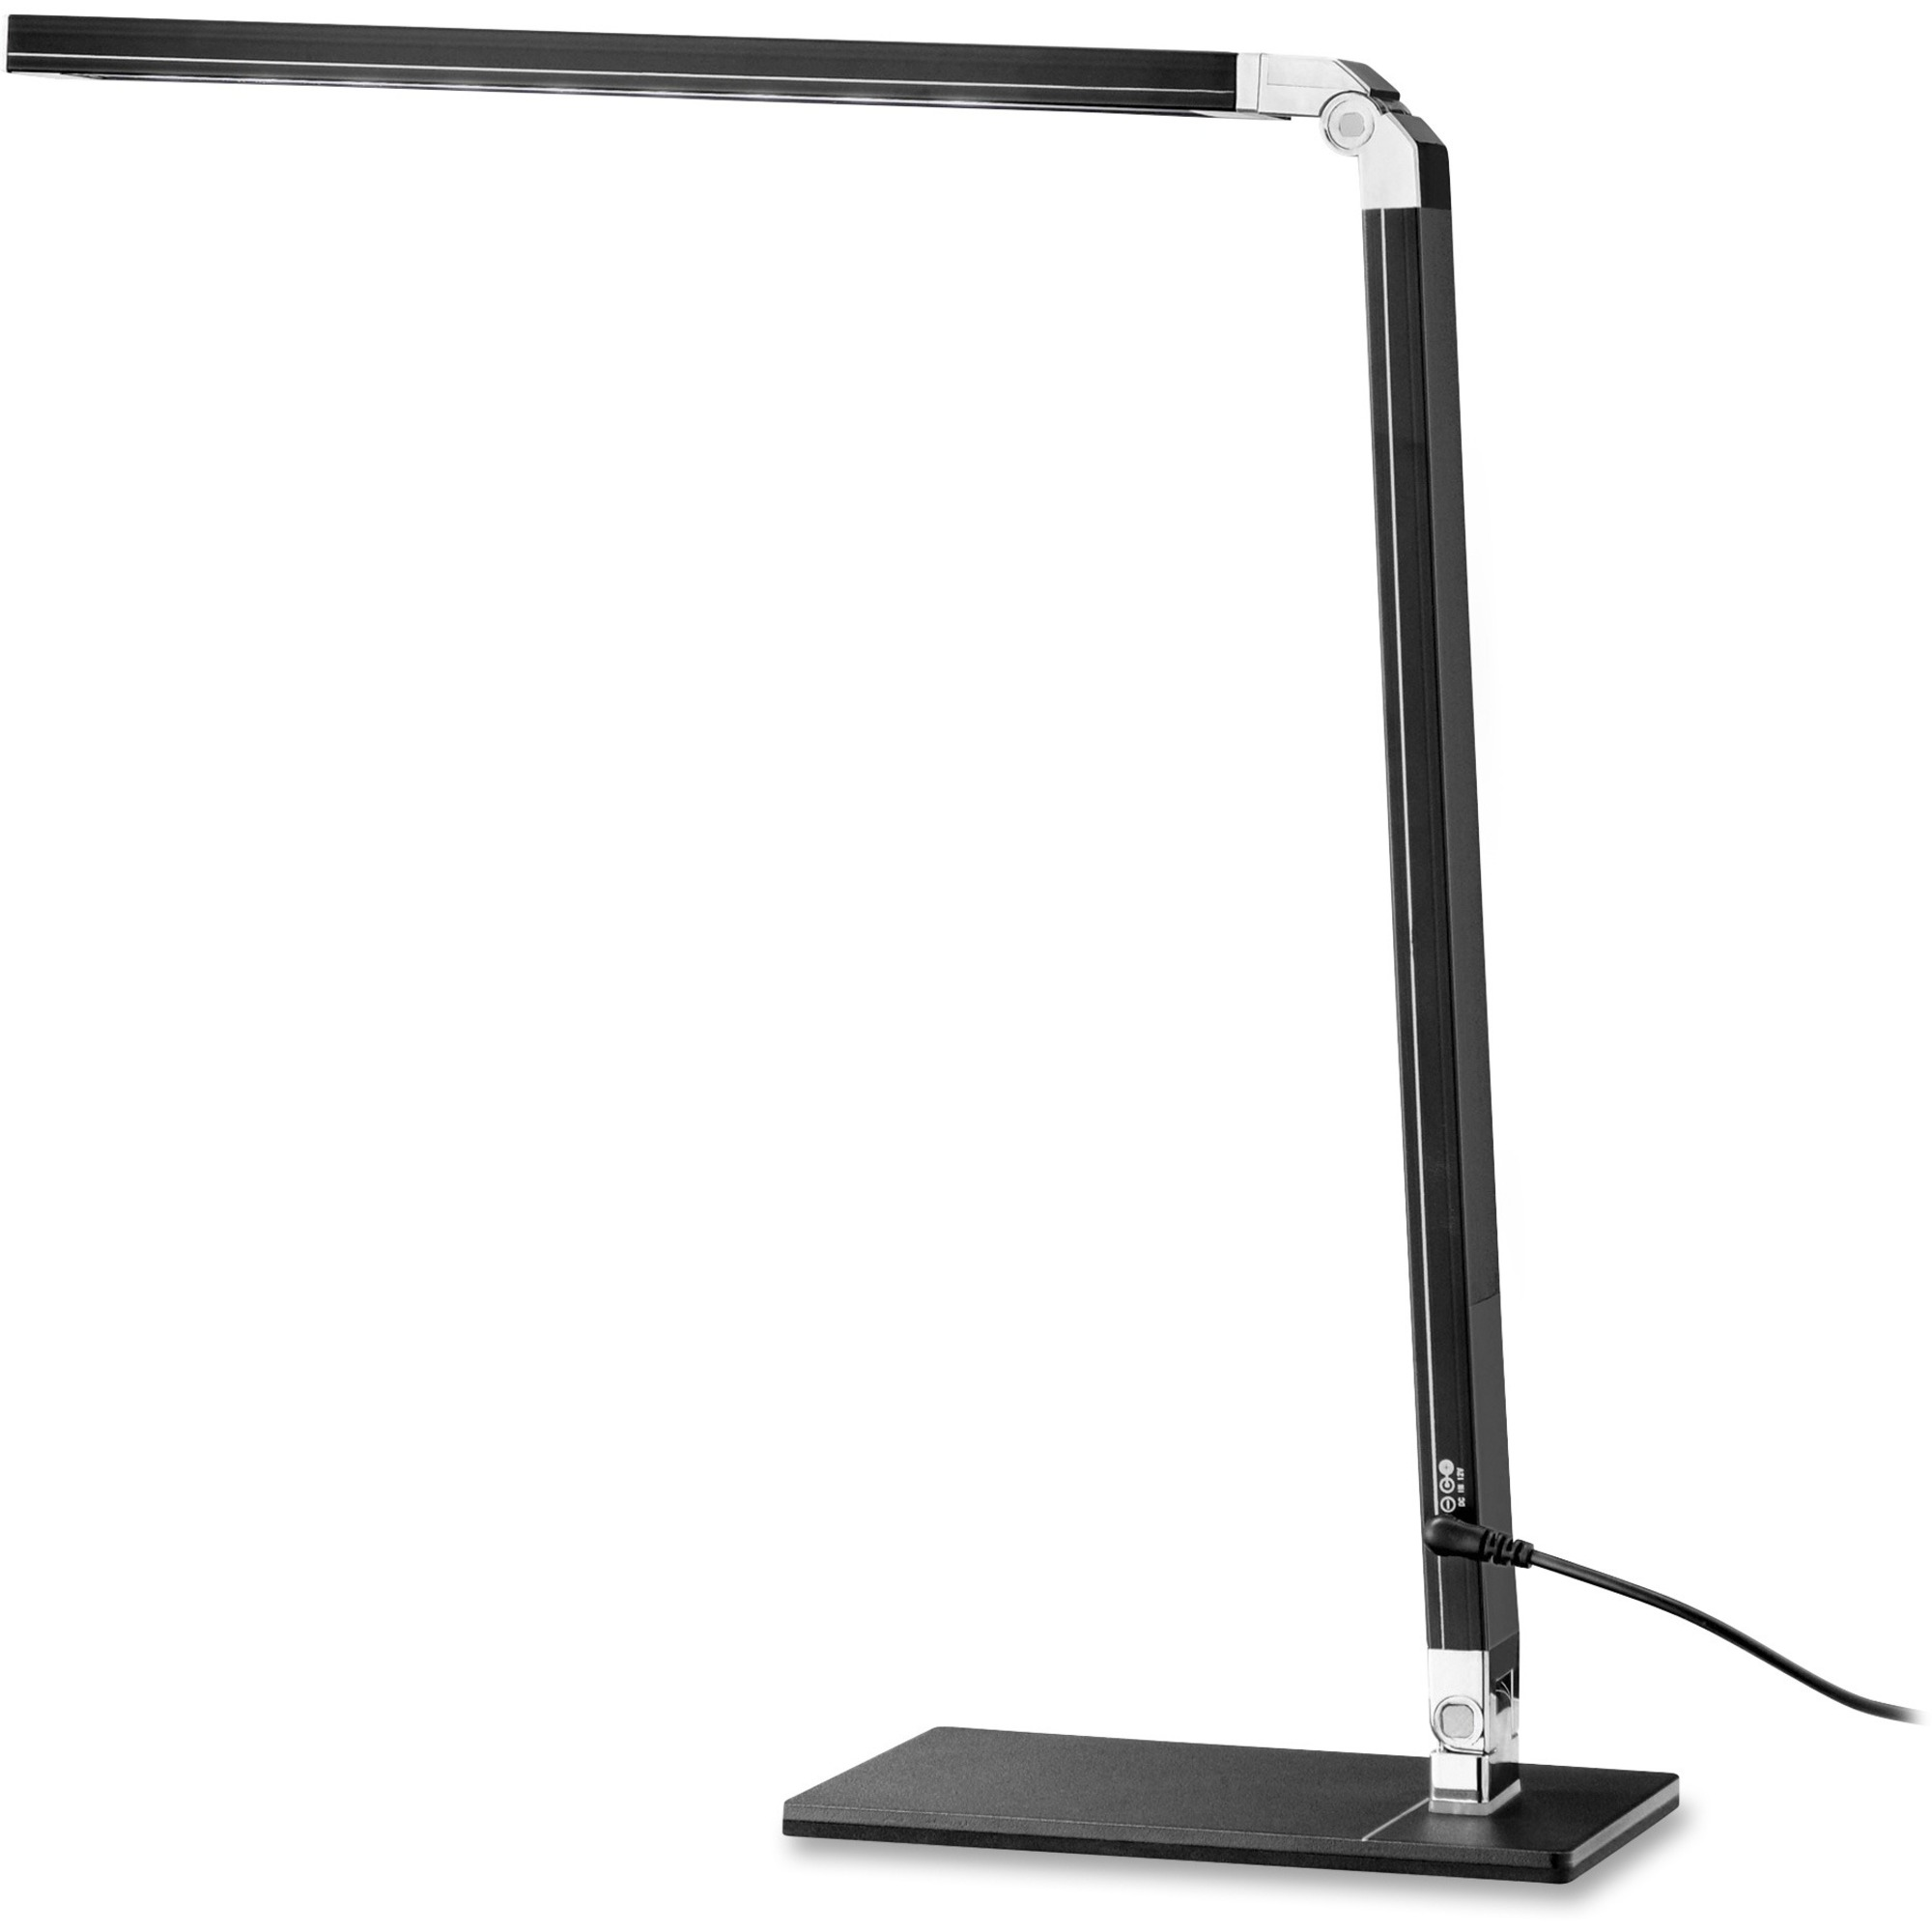 en bap ambientedirect led desk luceplan pid com lamp